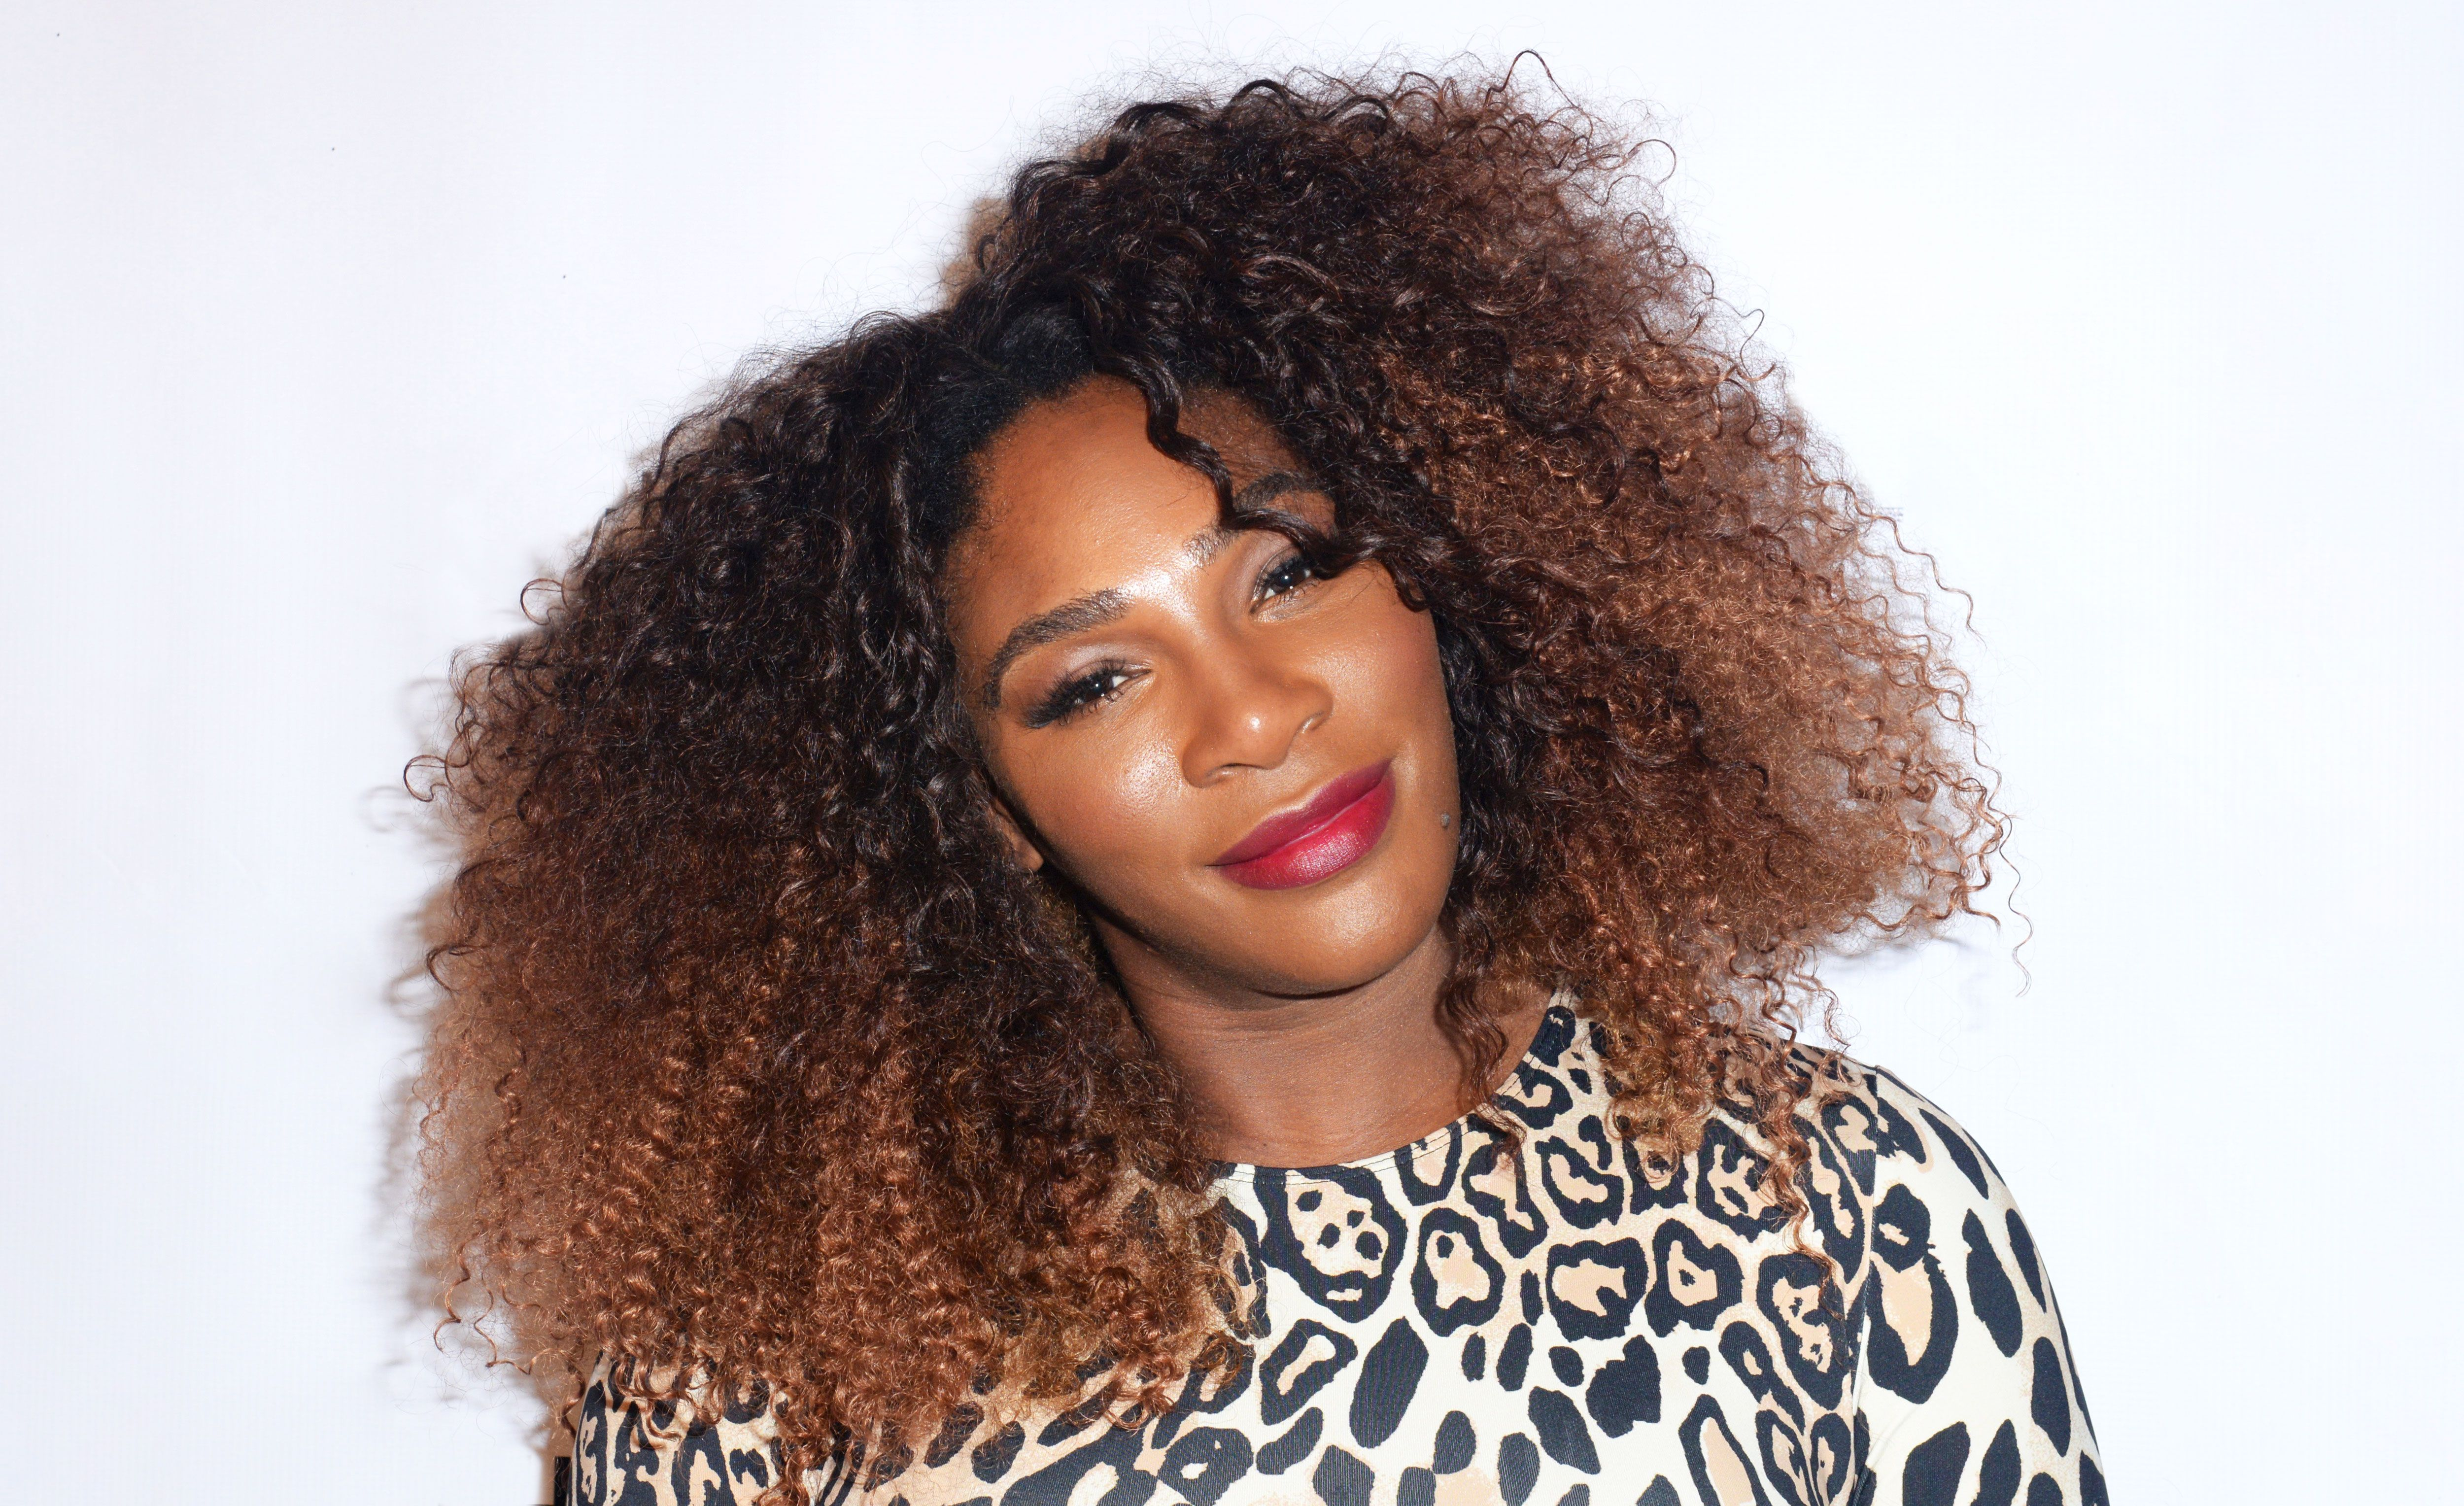 Serena Williams Goes Topless, Sings 'I Touch Myself' For Breast Cancer Awareness Month